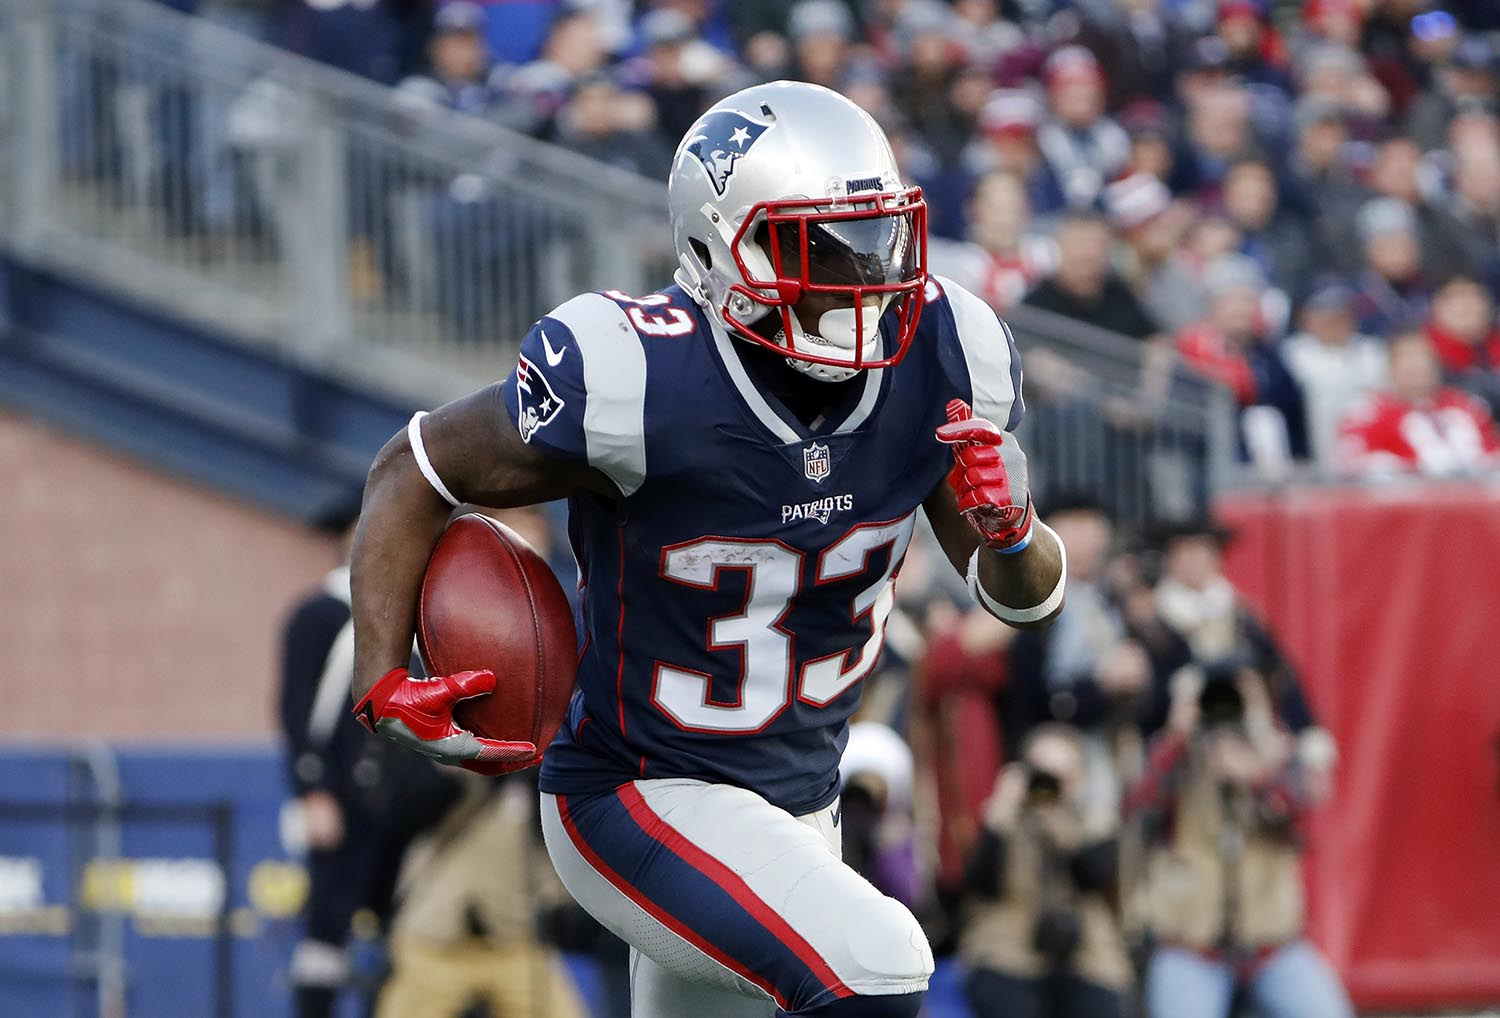 "<div class=""meta image-caption""><div class=""origin-logo origin-image ap""><span>AP</span></div><span class=""caption-text"">New England Patriots' running back Dion Lewis is a native of Albany, NY. (AP Photo/Winslow Townson)</span></div>"